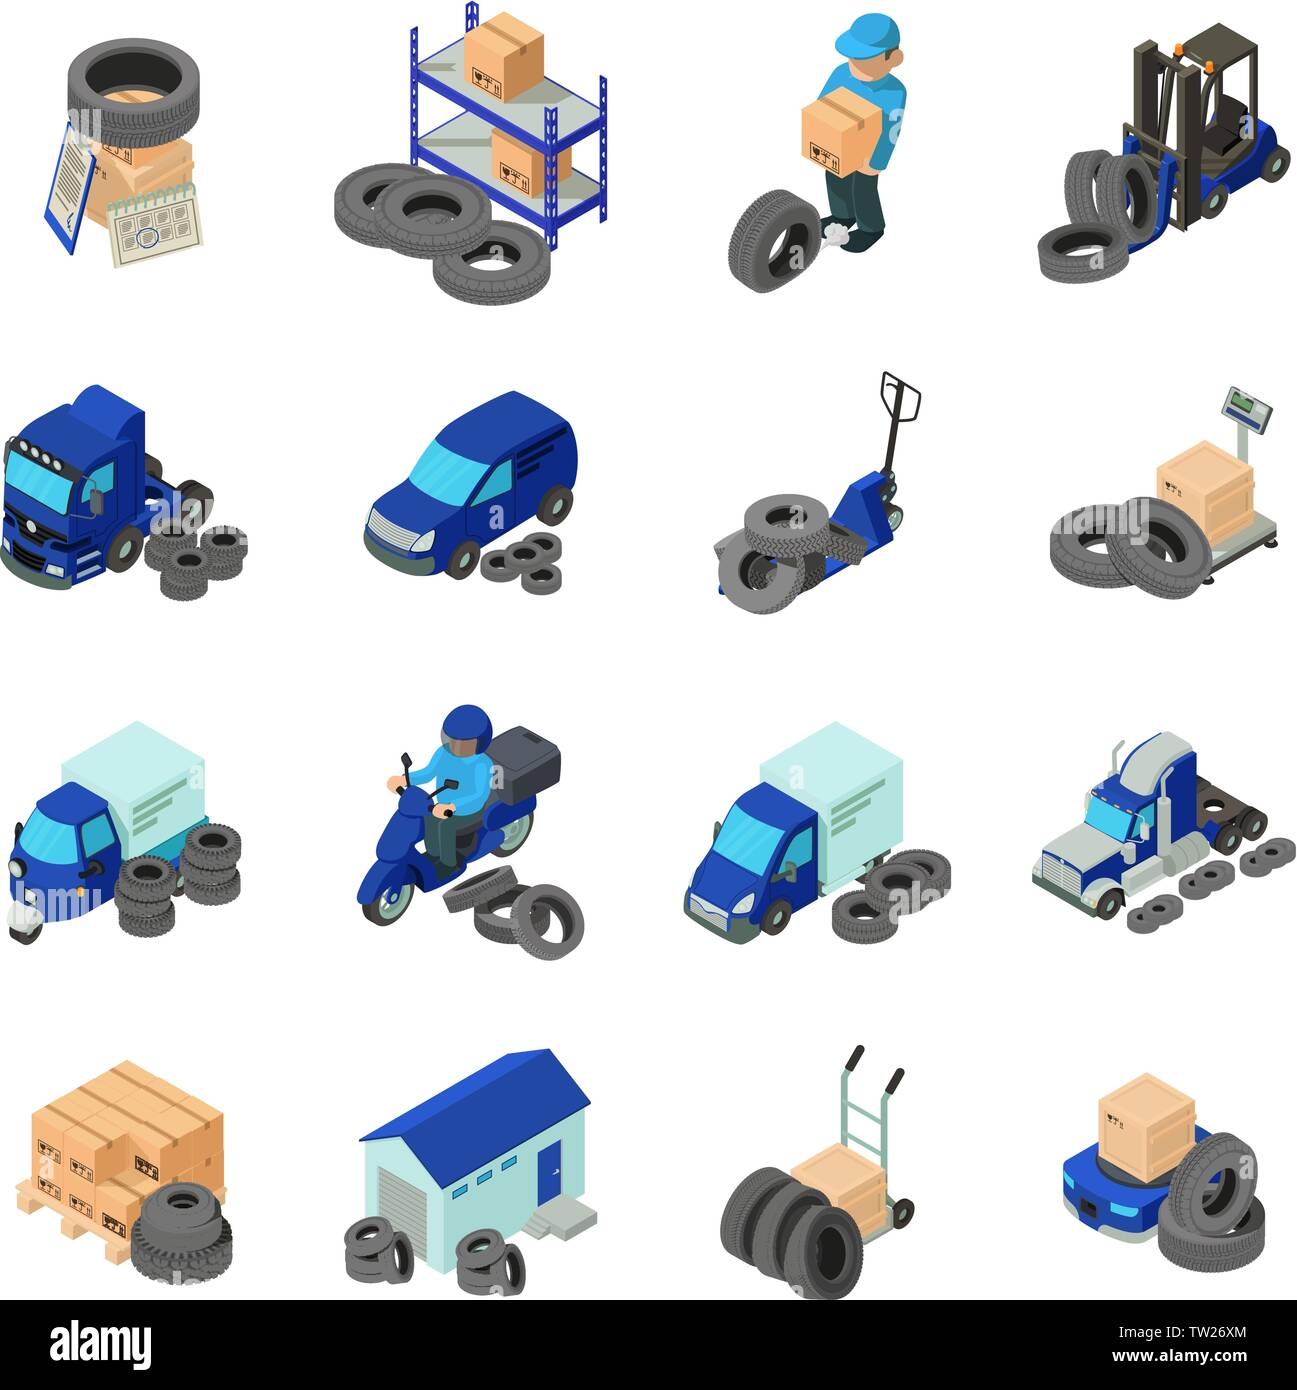 Tire warehouse icons set, isometric style - Stock Vector